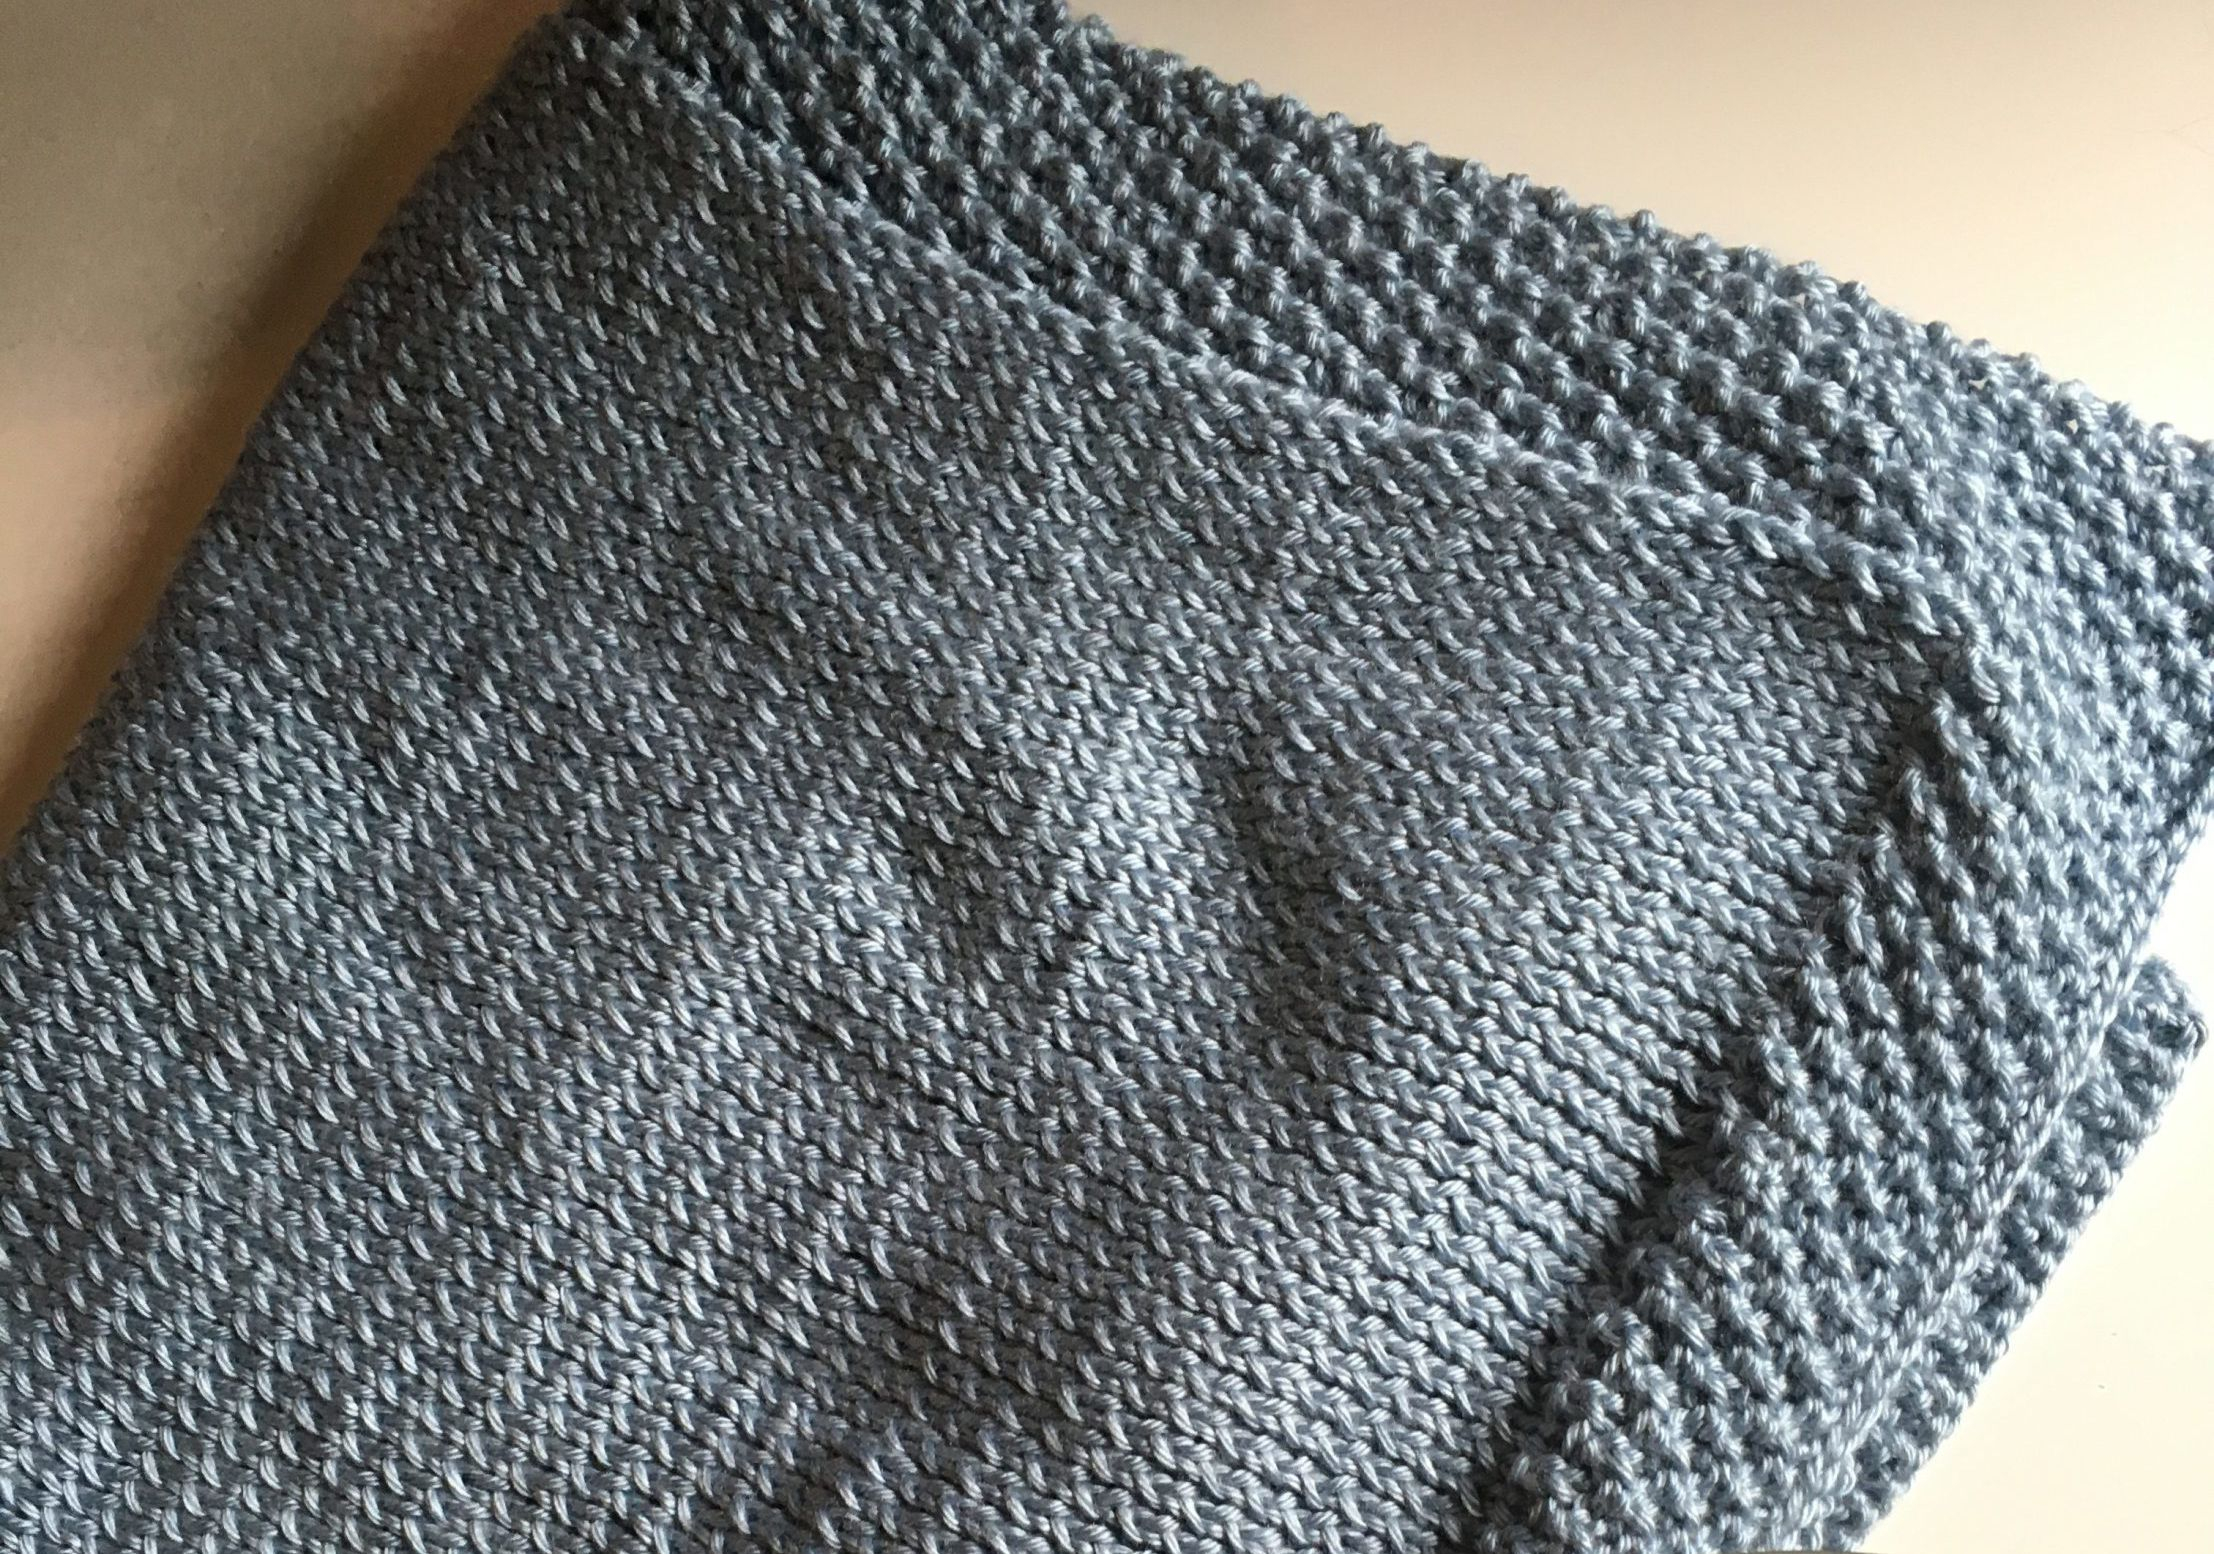 Knit Afghan Patterns Free 25 Easy Knitting Patterns For Beginners